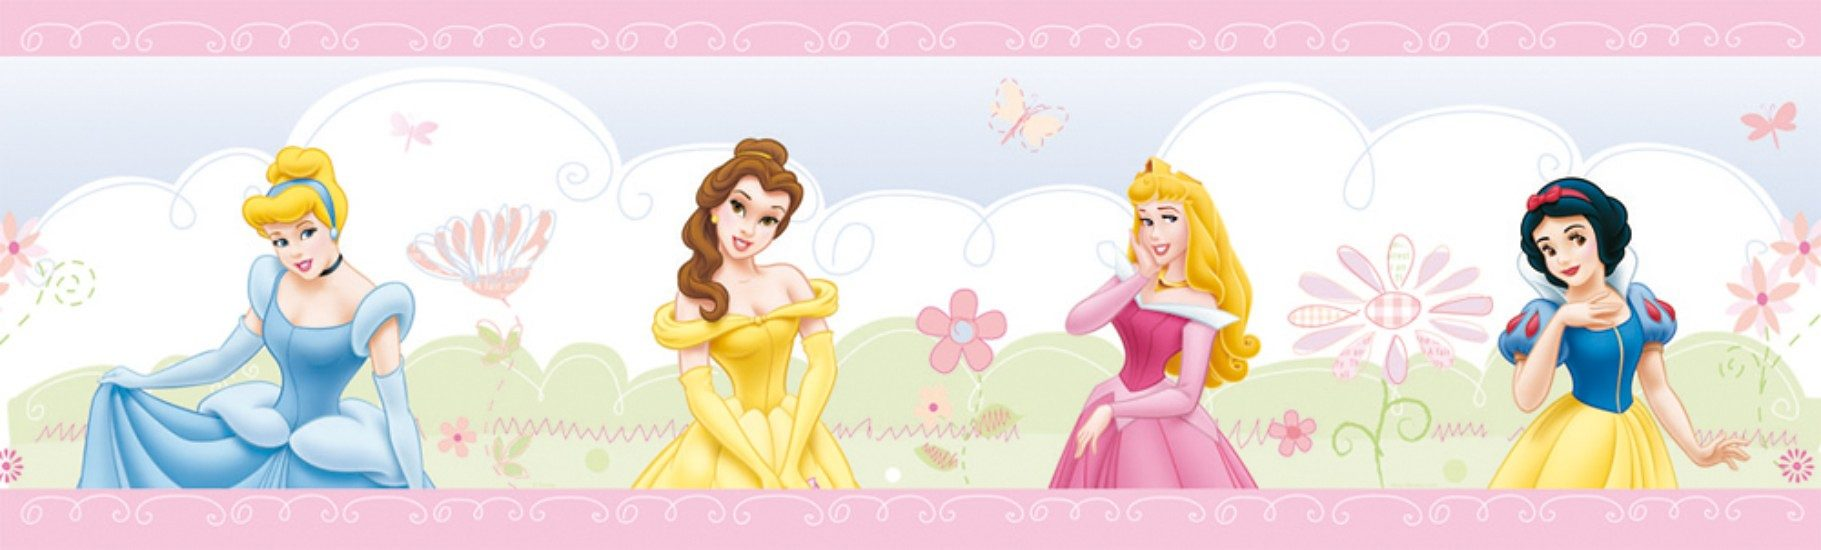 Decofun Bordüre Disney Princess Castle